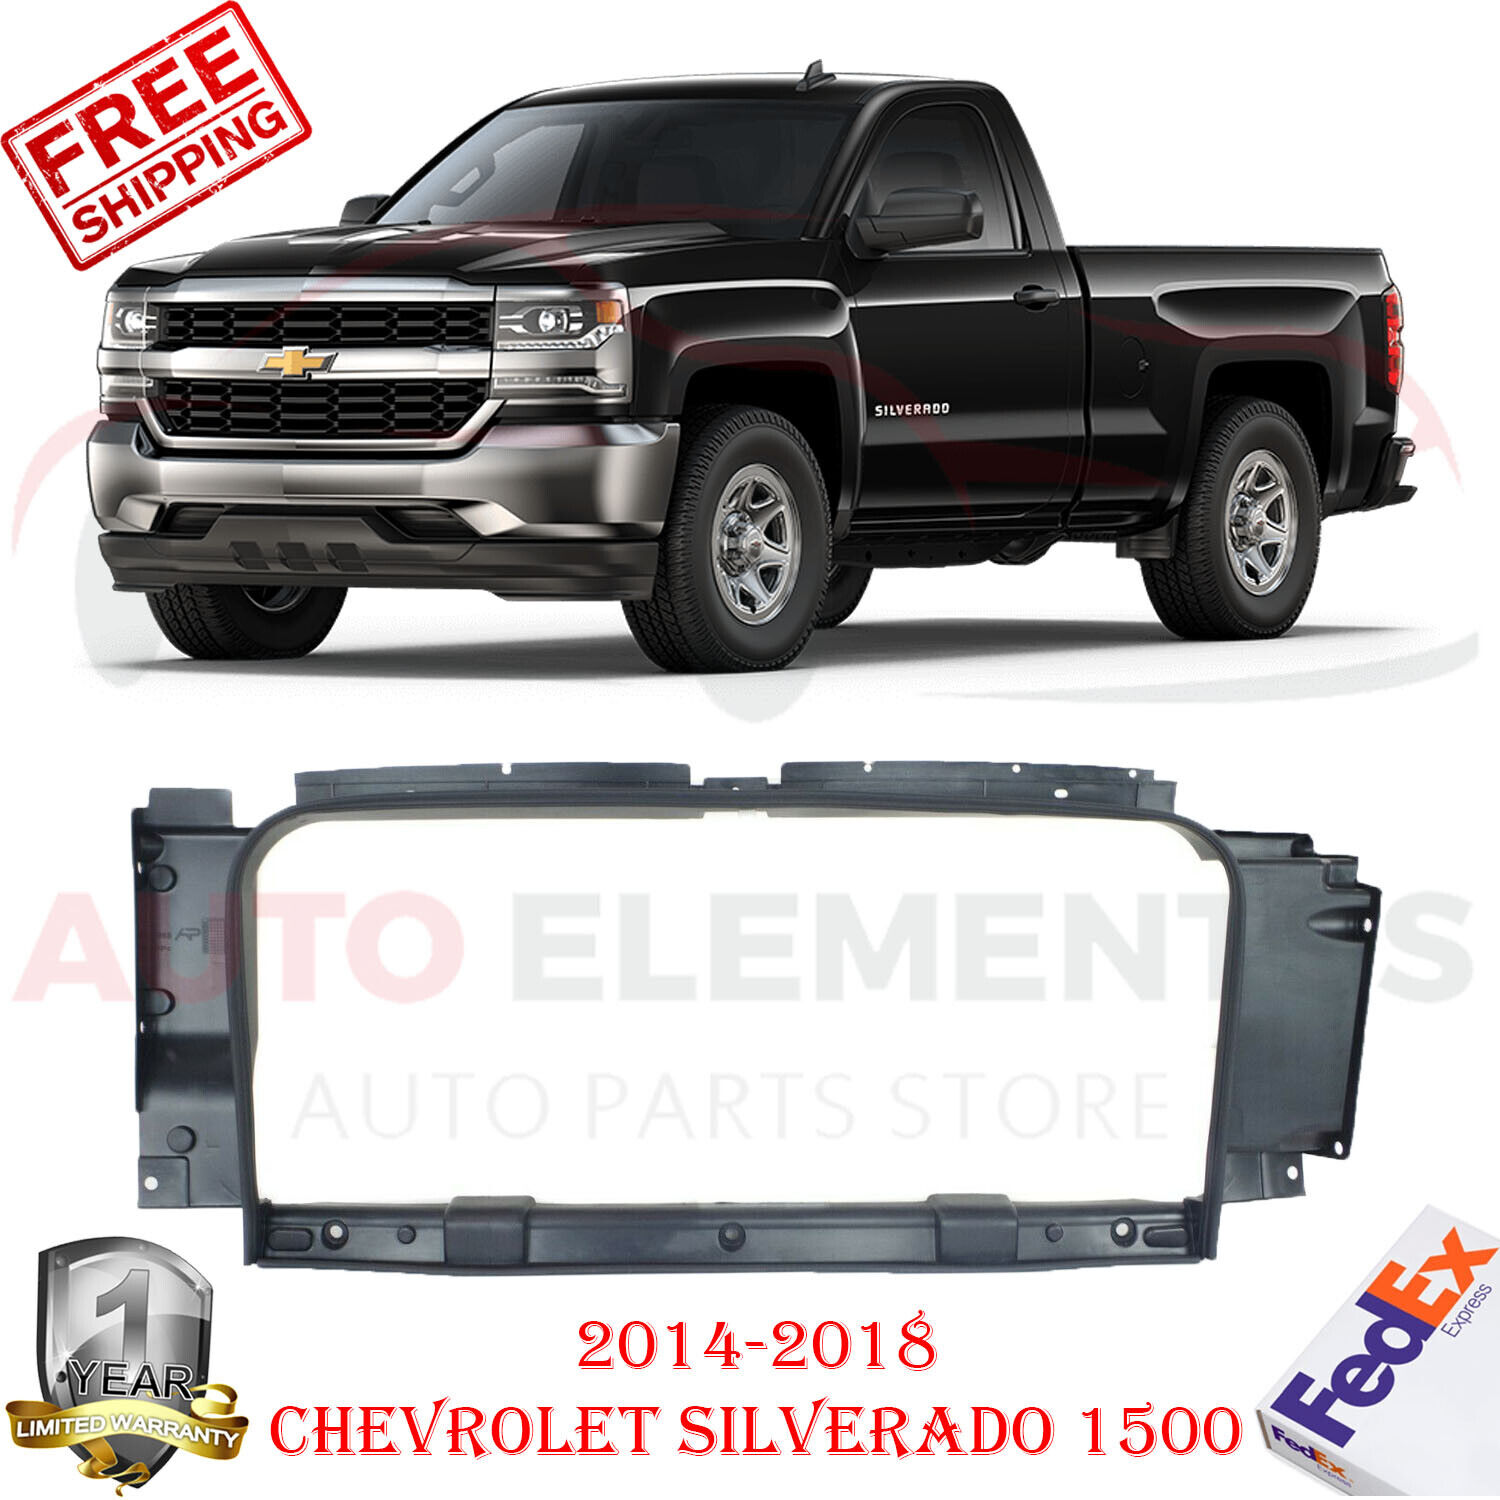 Radiator Support For 2014-2018 Chevrolet Silverado 1500 Black Plastic